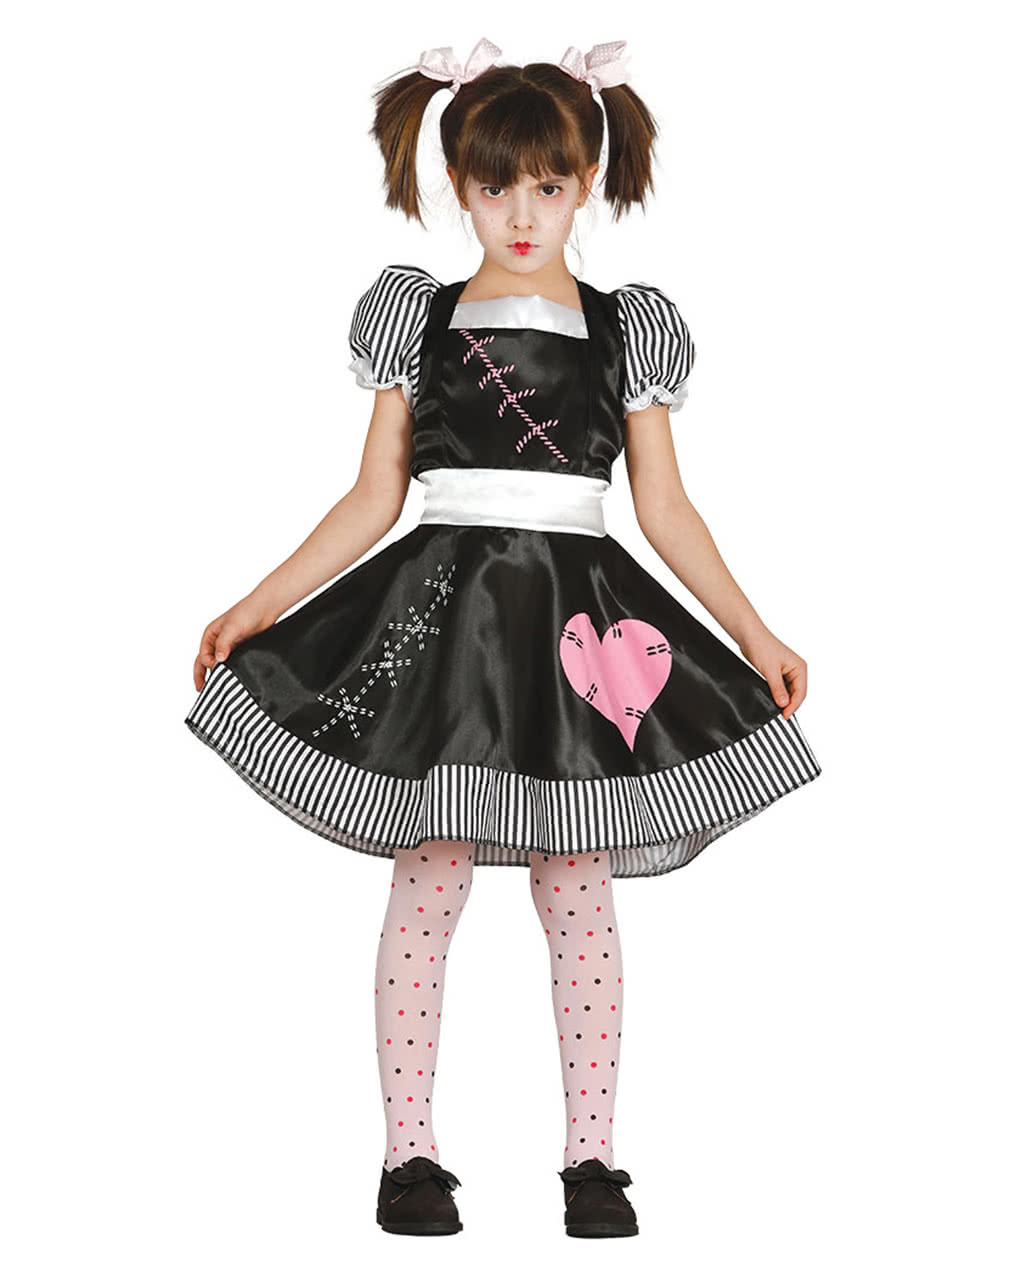 horror doll costume ragdoll for halloween kids party. Black Bedroom Furniture Sets. Home Design Ideas